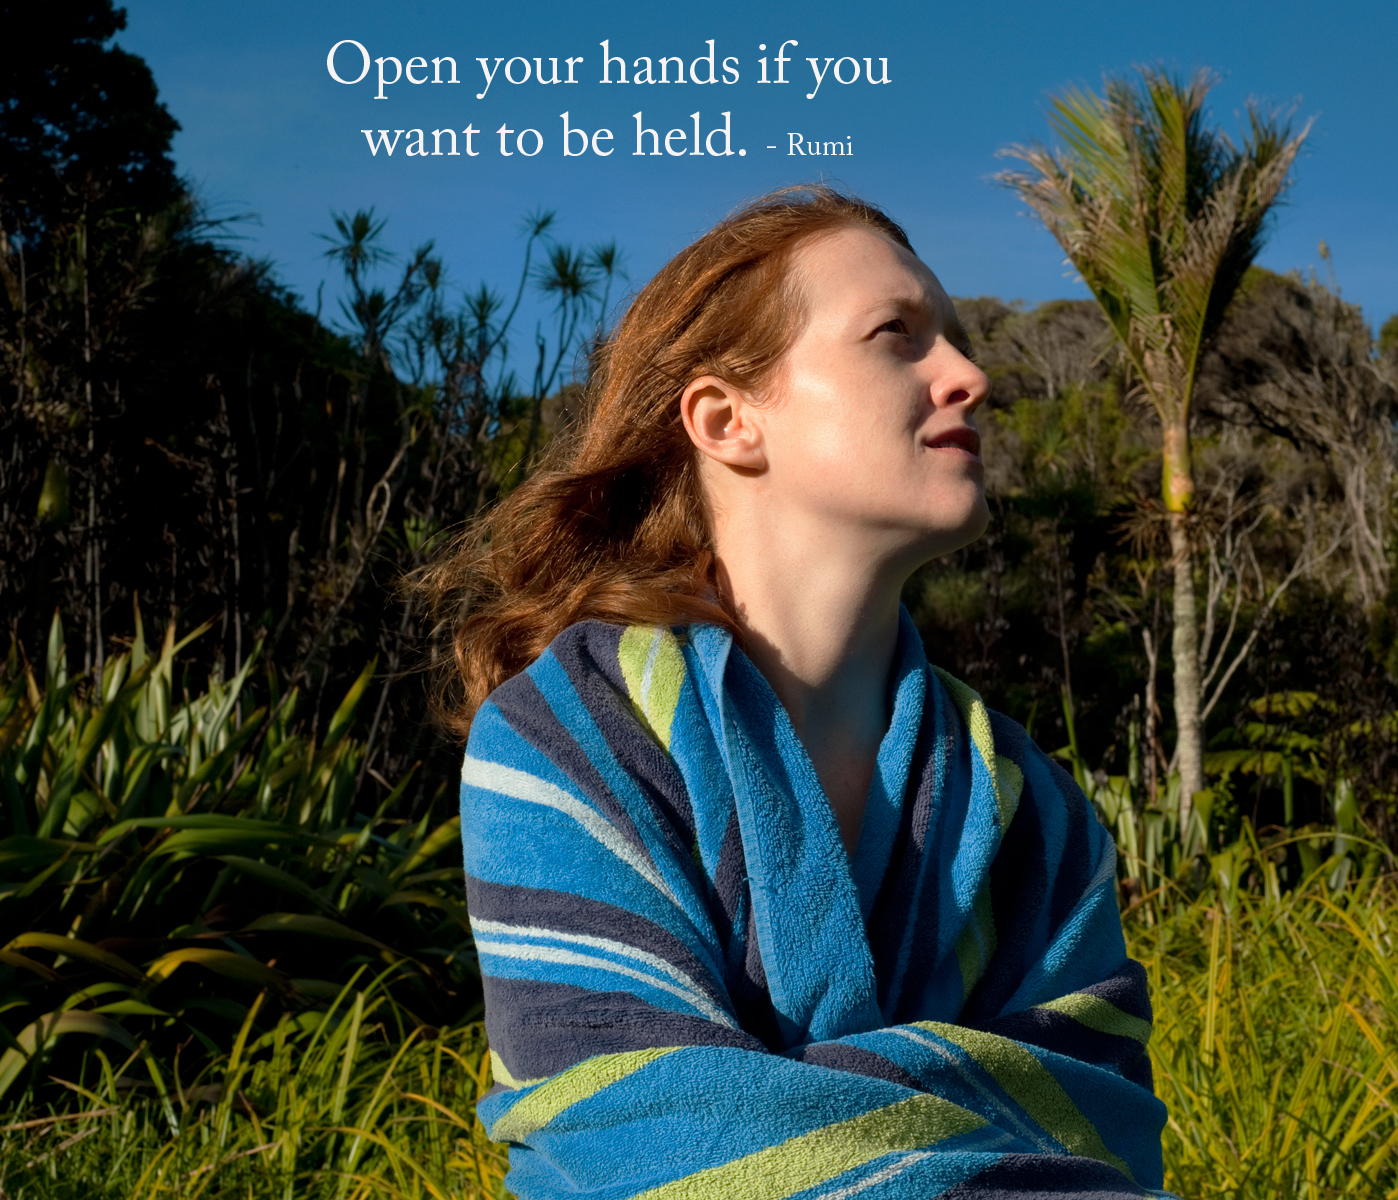 Open your hands if you want to held